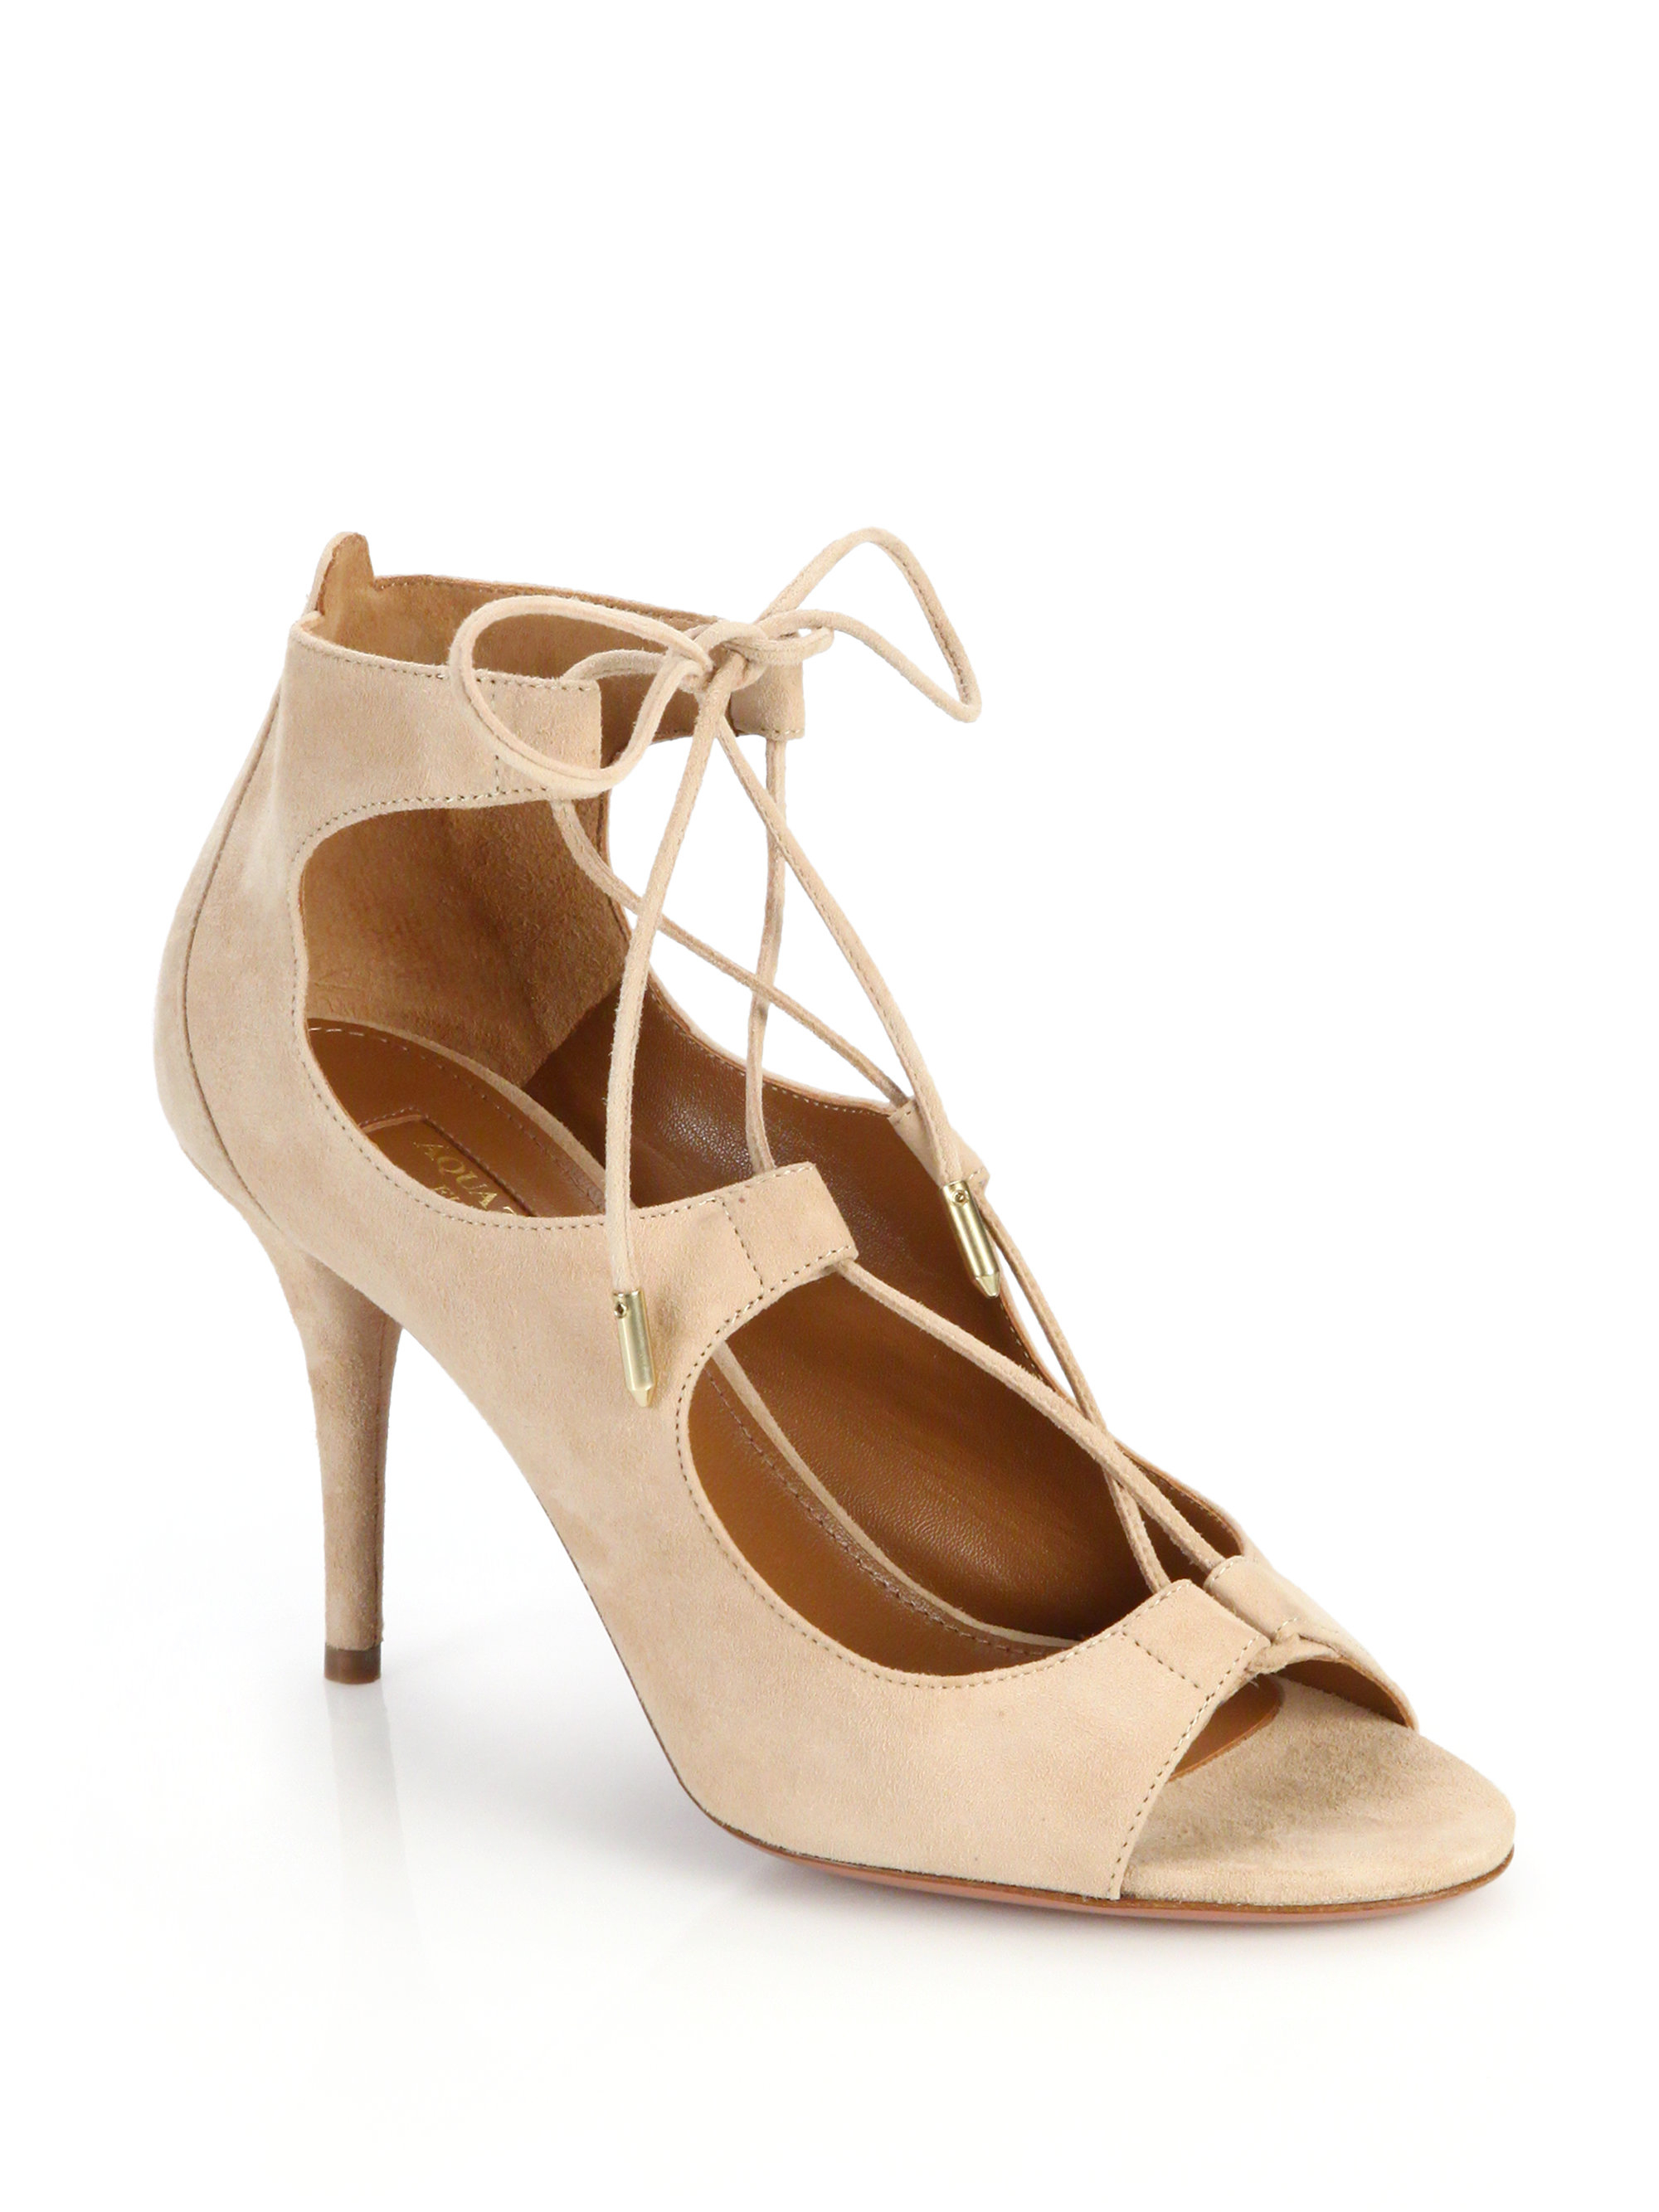 2014 newest for sale Aquazzura Peep-Toe Platform Sandals 2015 new buy cheap pre order from china free shipping best deals 50Him